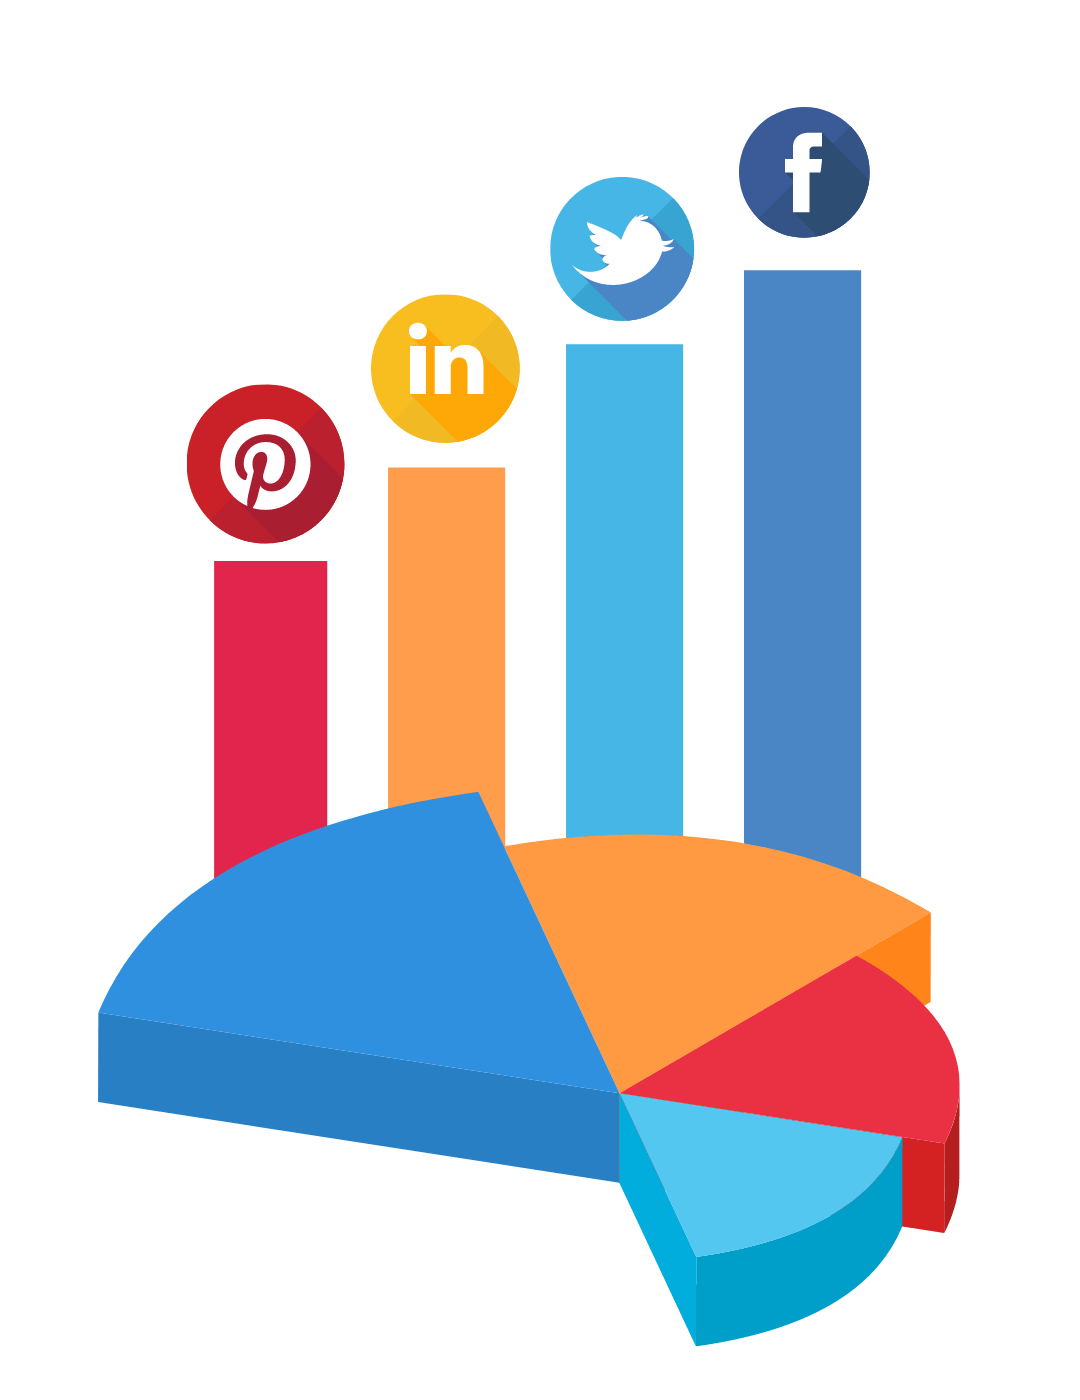 Illustration of a pie chart with social media icons and a transparent background